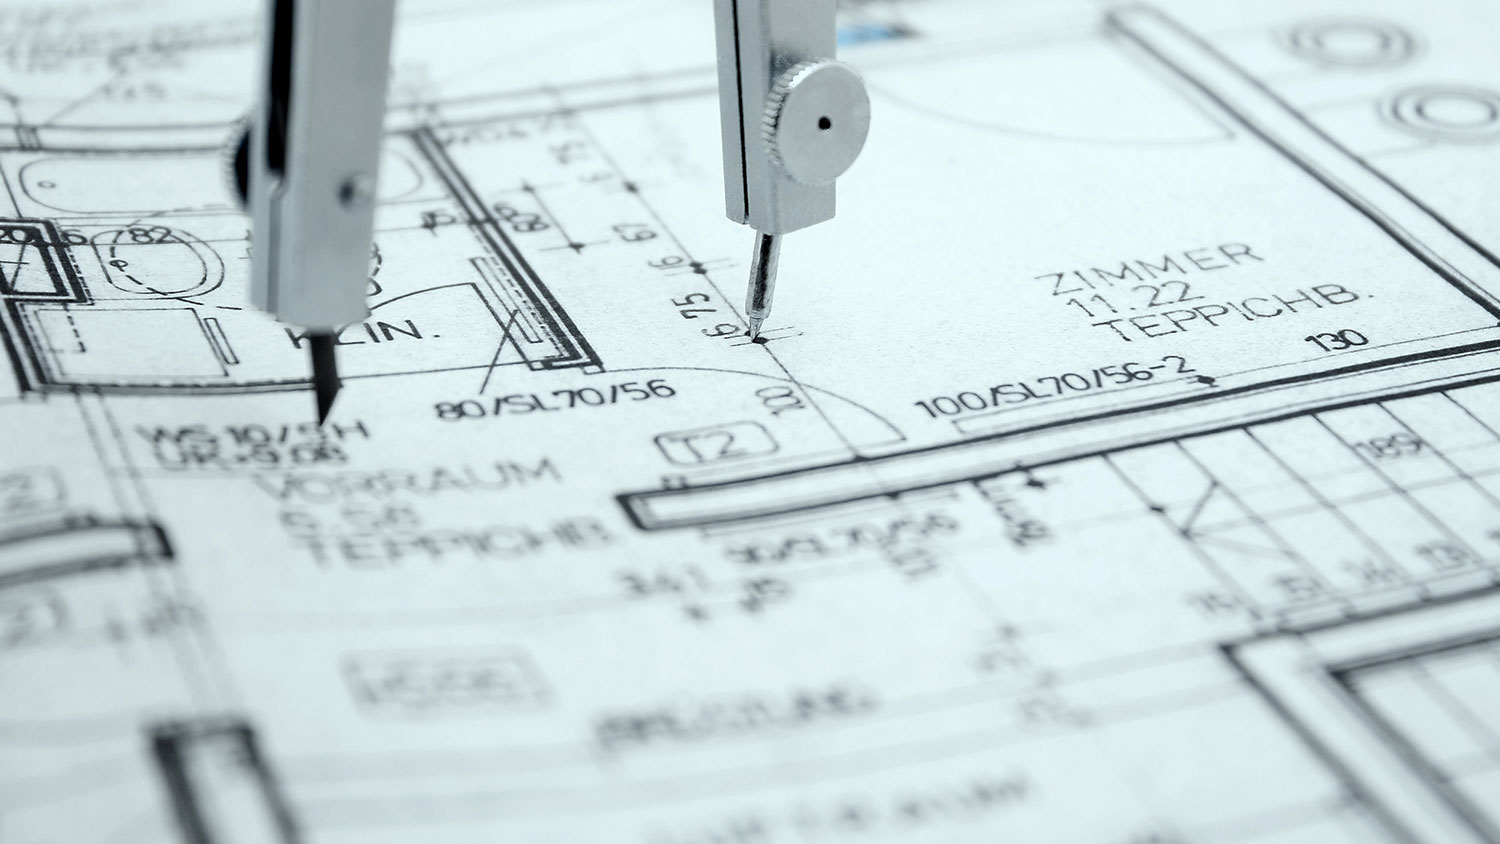 4 FACTORS TO CONSIDER BEFORE BUILDING A HOME